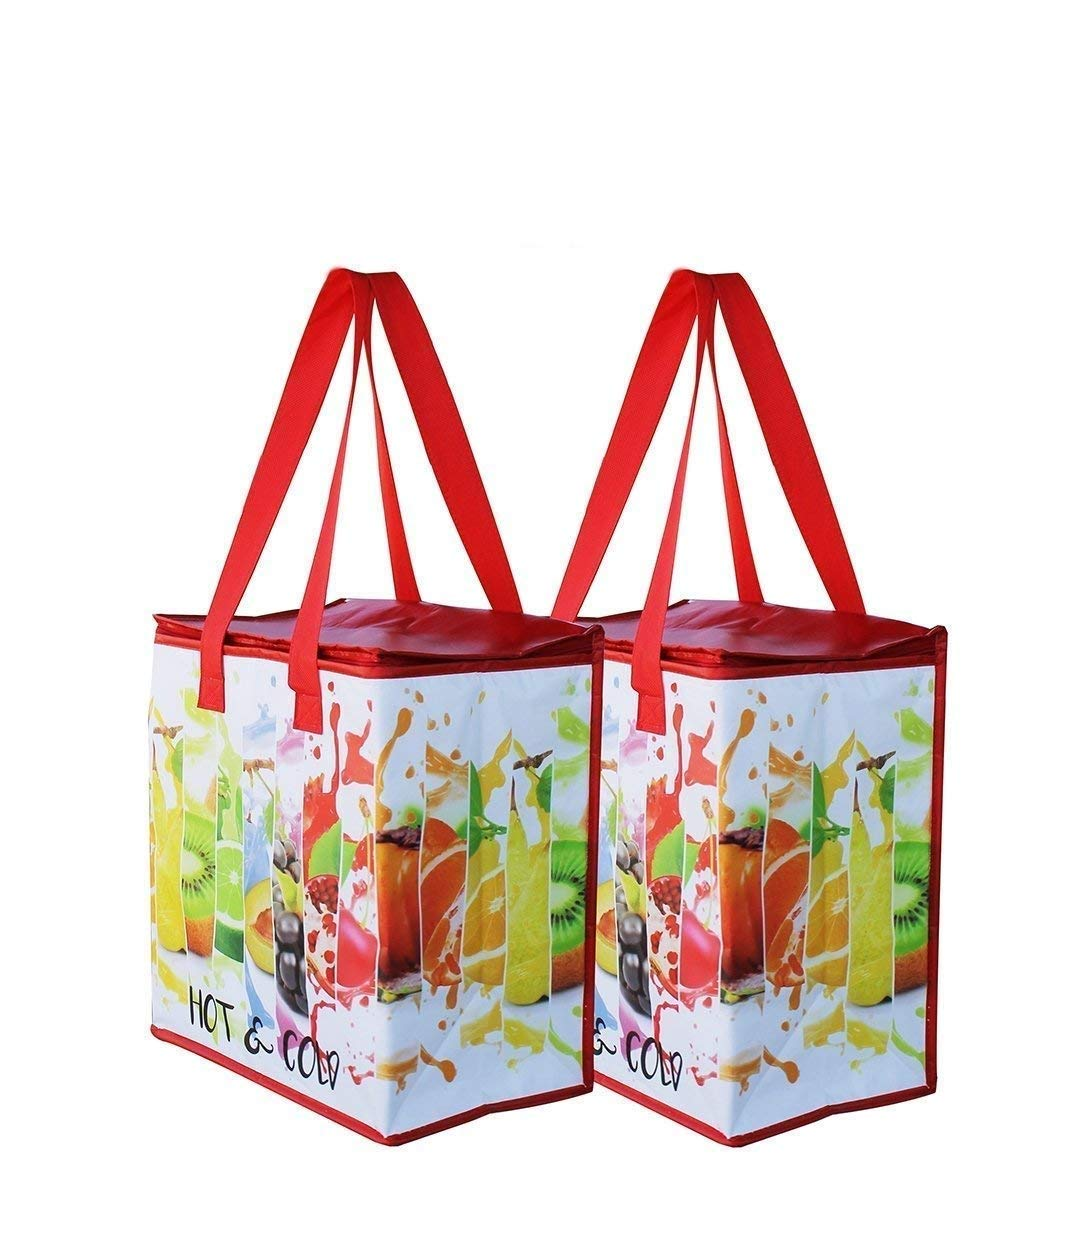 Earthwise Insulated Reusable Grocery Bag Shopping Tote with Zipper Top Lid Fruit Splash Print Thermal for Frozen or Hot Food Carrier Collapsible (Pack of 2) by Earthwise (Image #1)